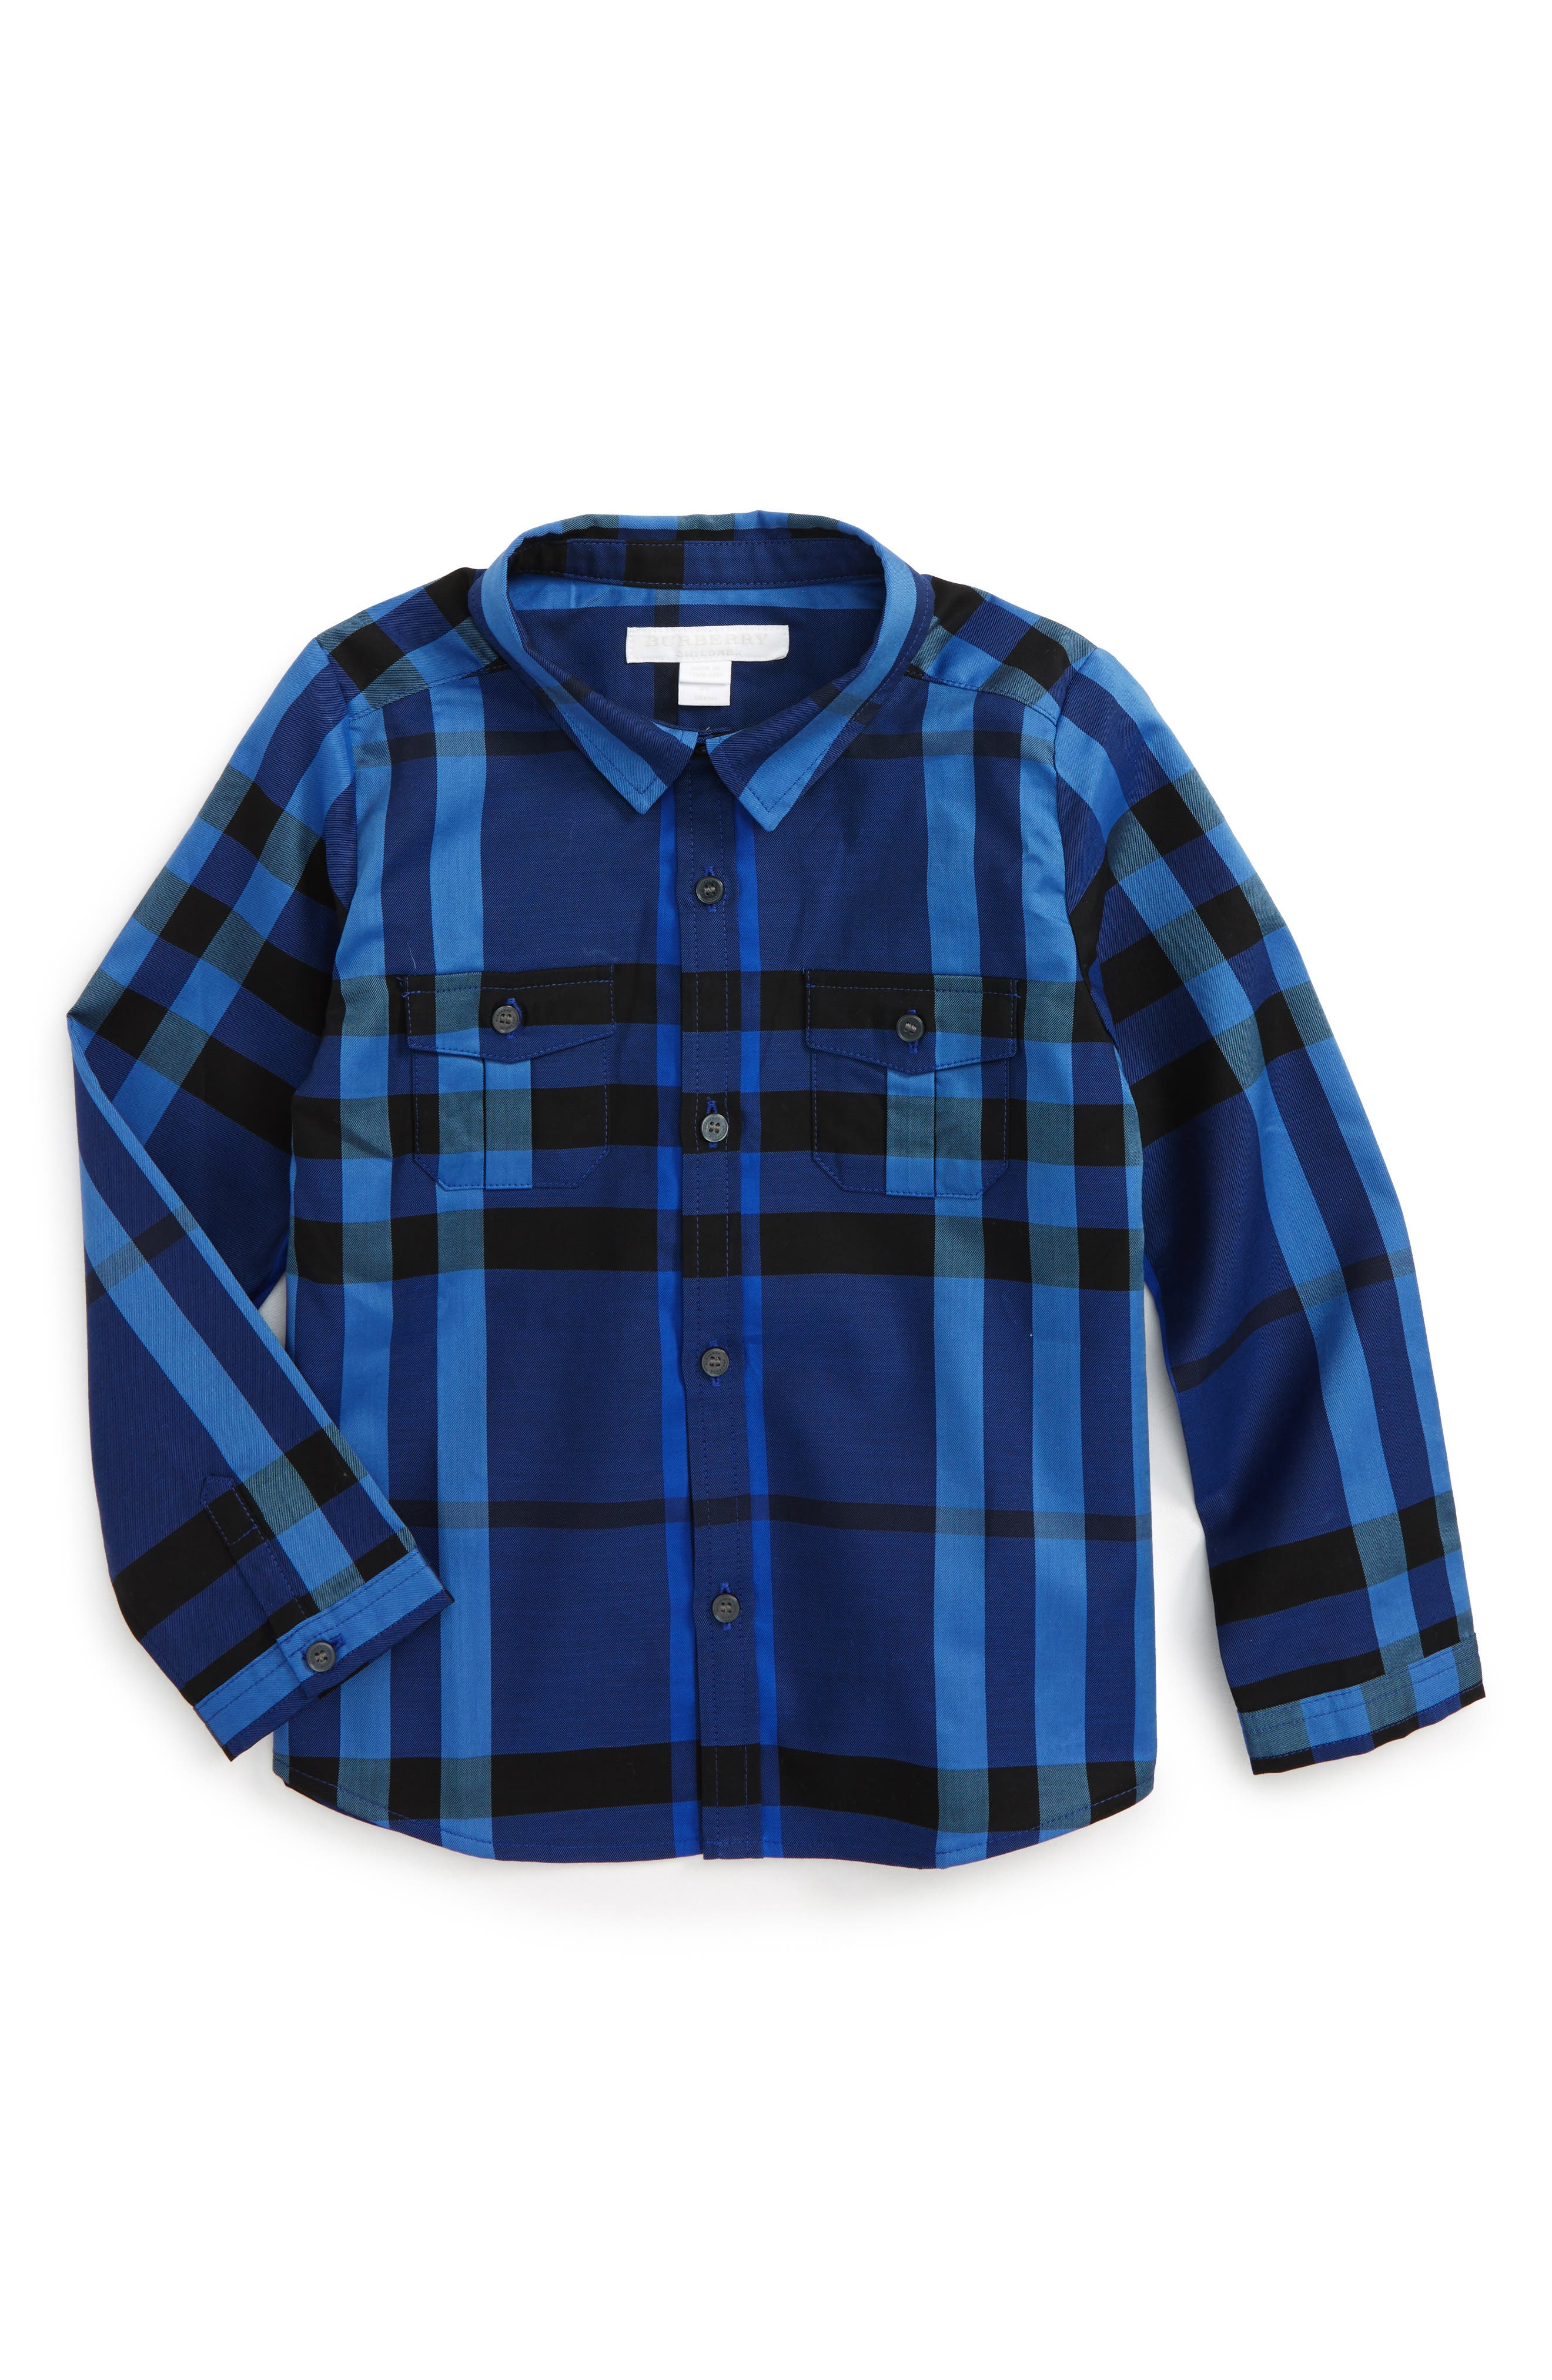 Burberry Trent Plaid Woven Shirt (Toddler Boys)